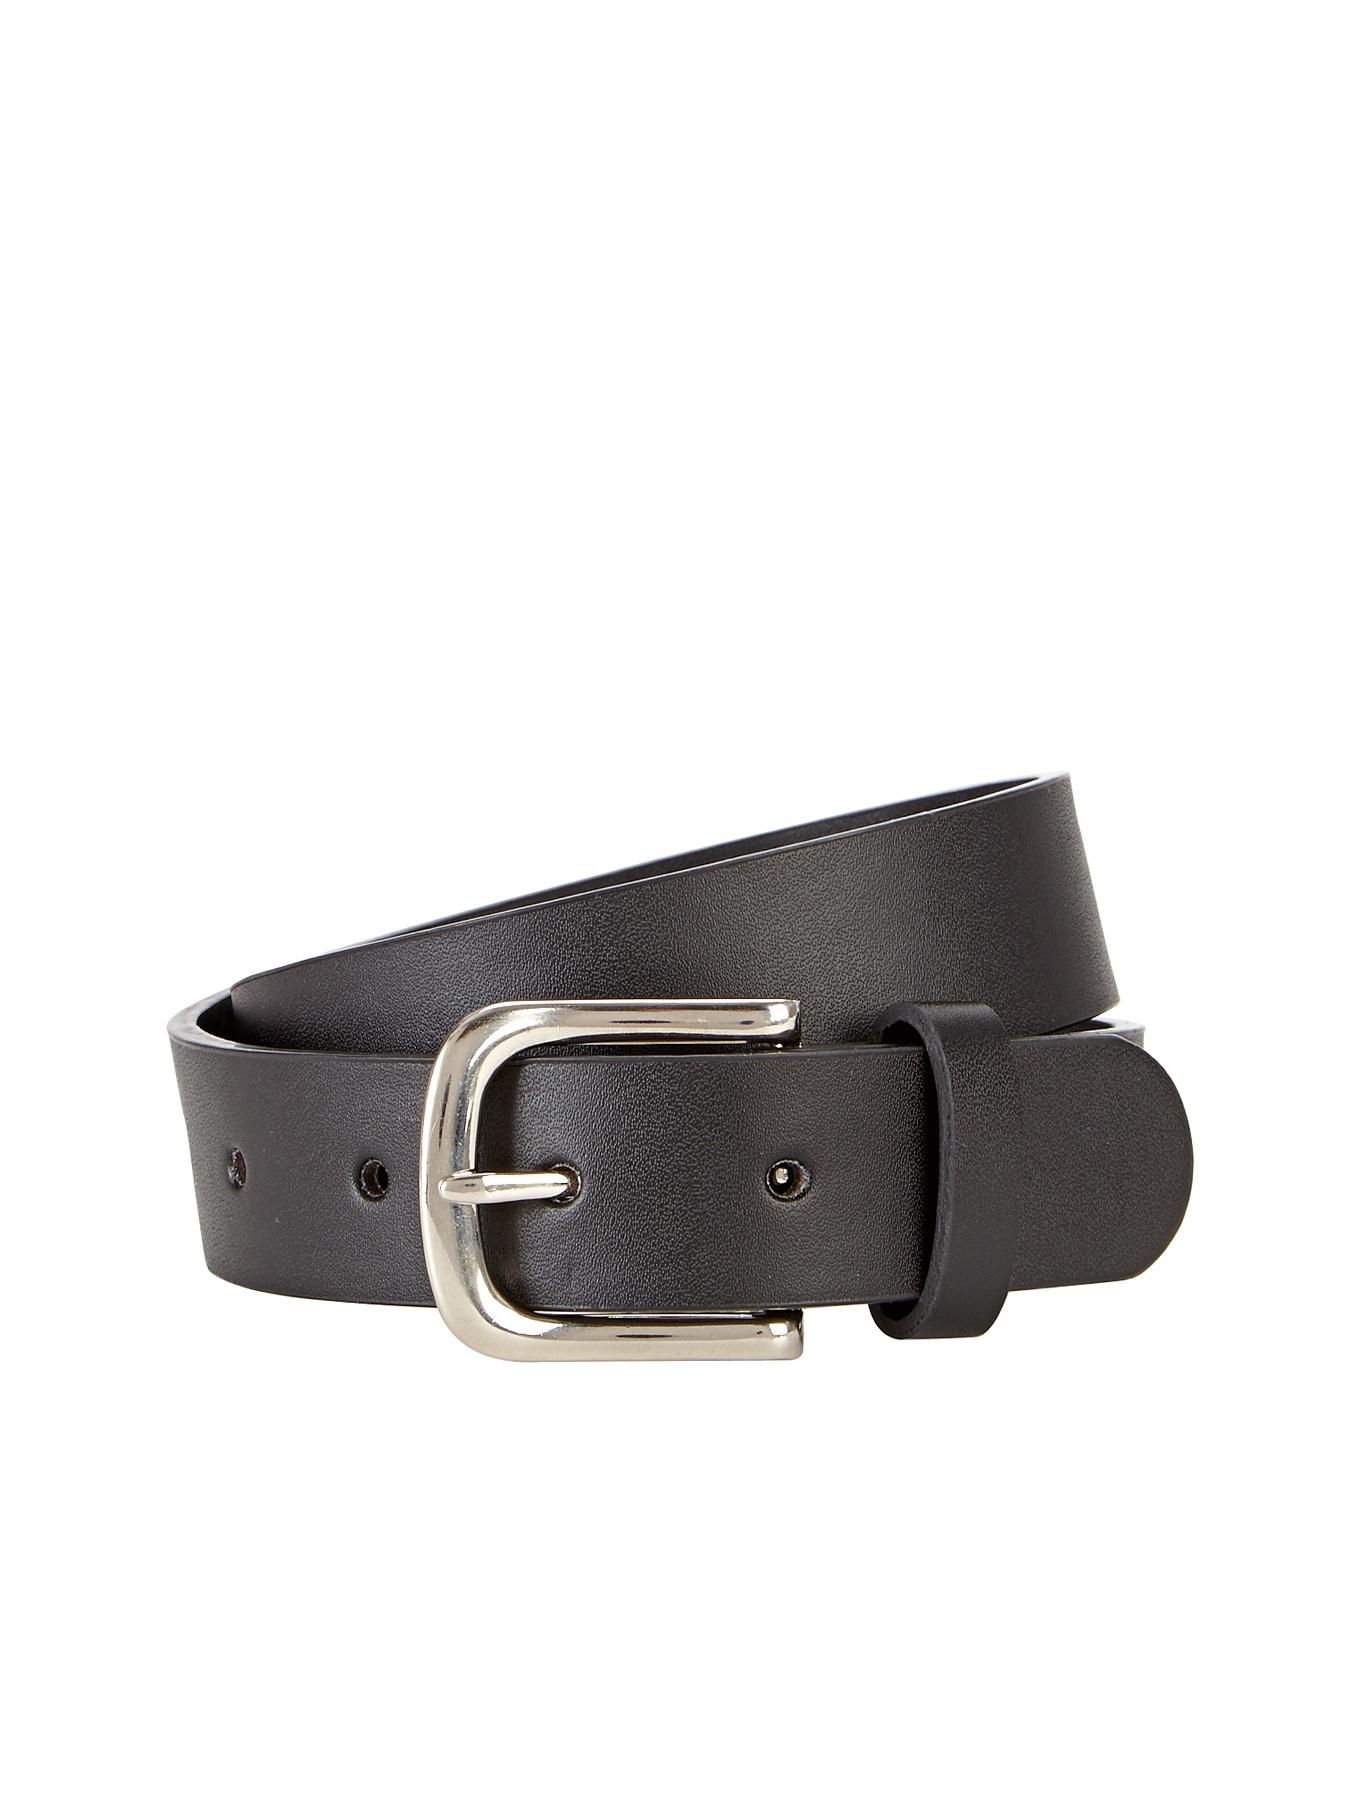 Boys Basic Belt, Black